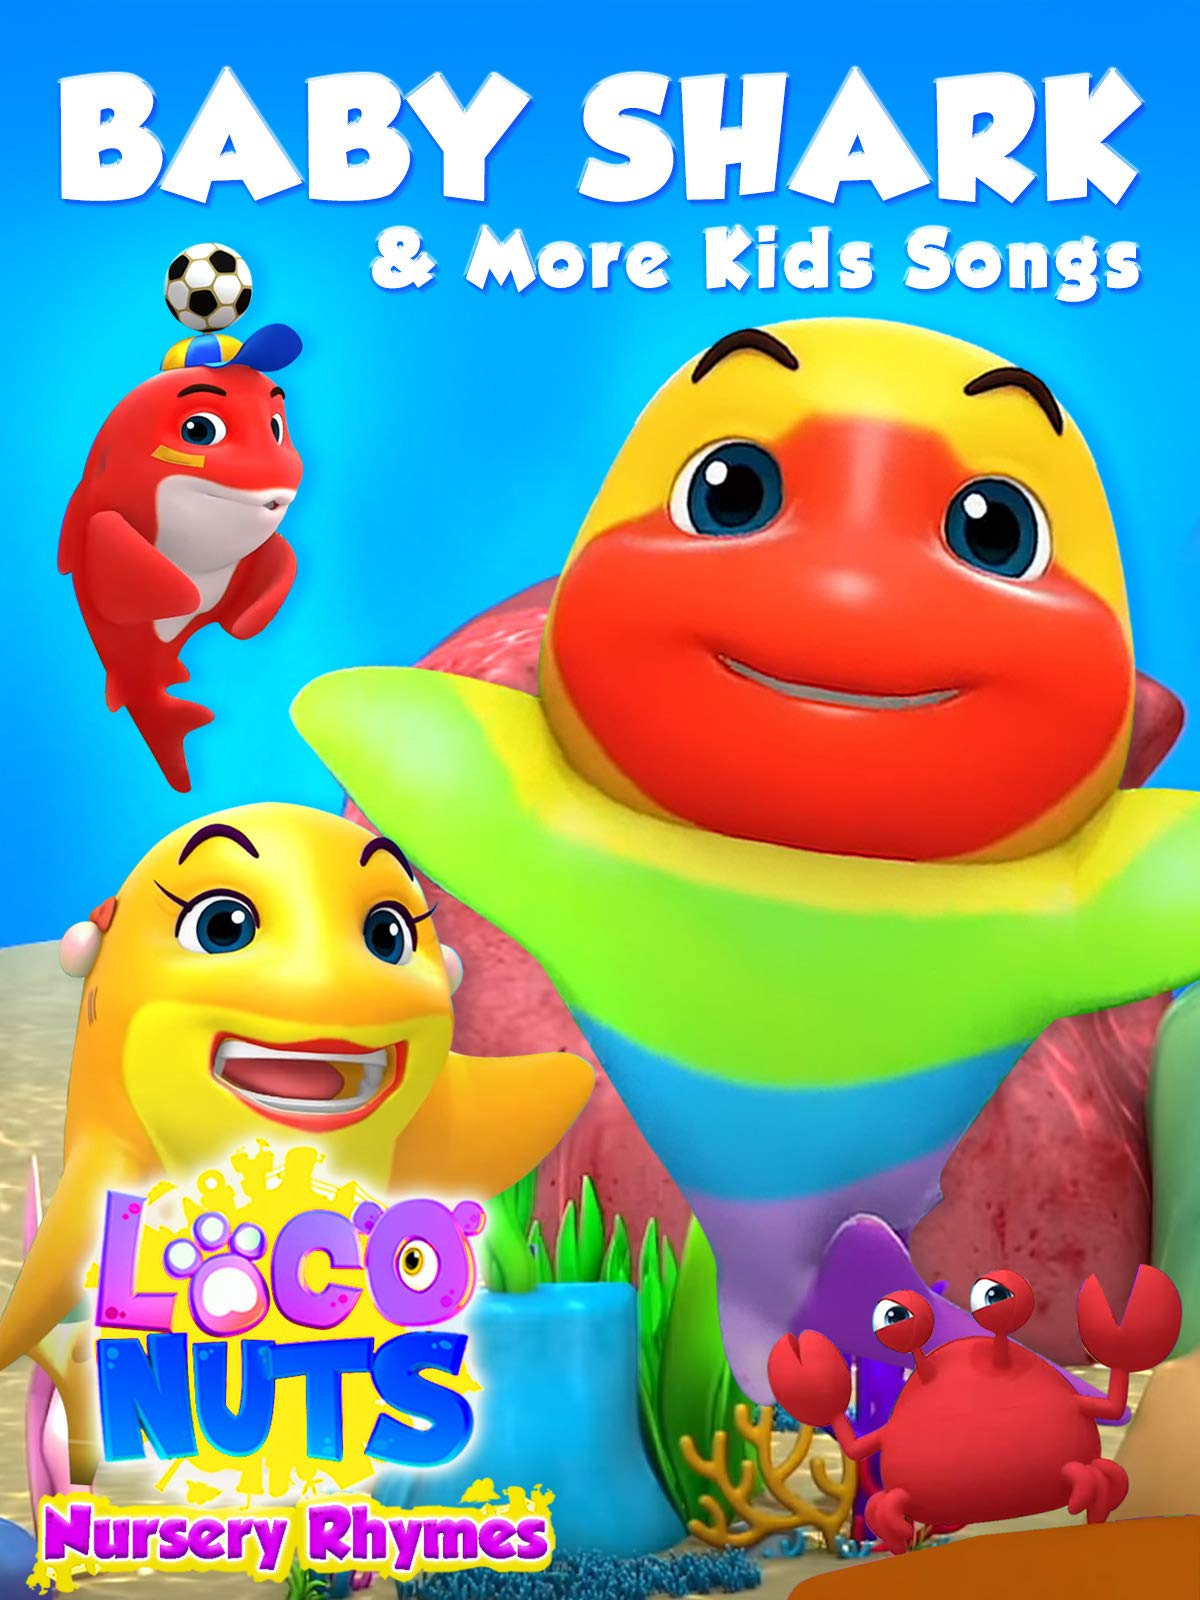 Baby Shark & More Kids Songs - Loco Nuts Nursery Rhymes on Amazon Prime Instant Video UK